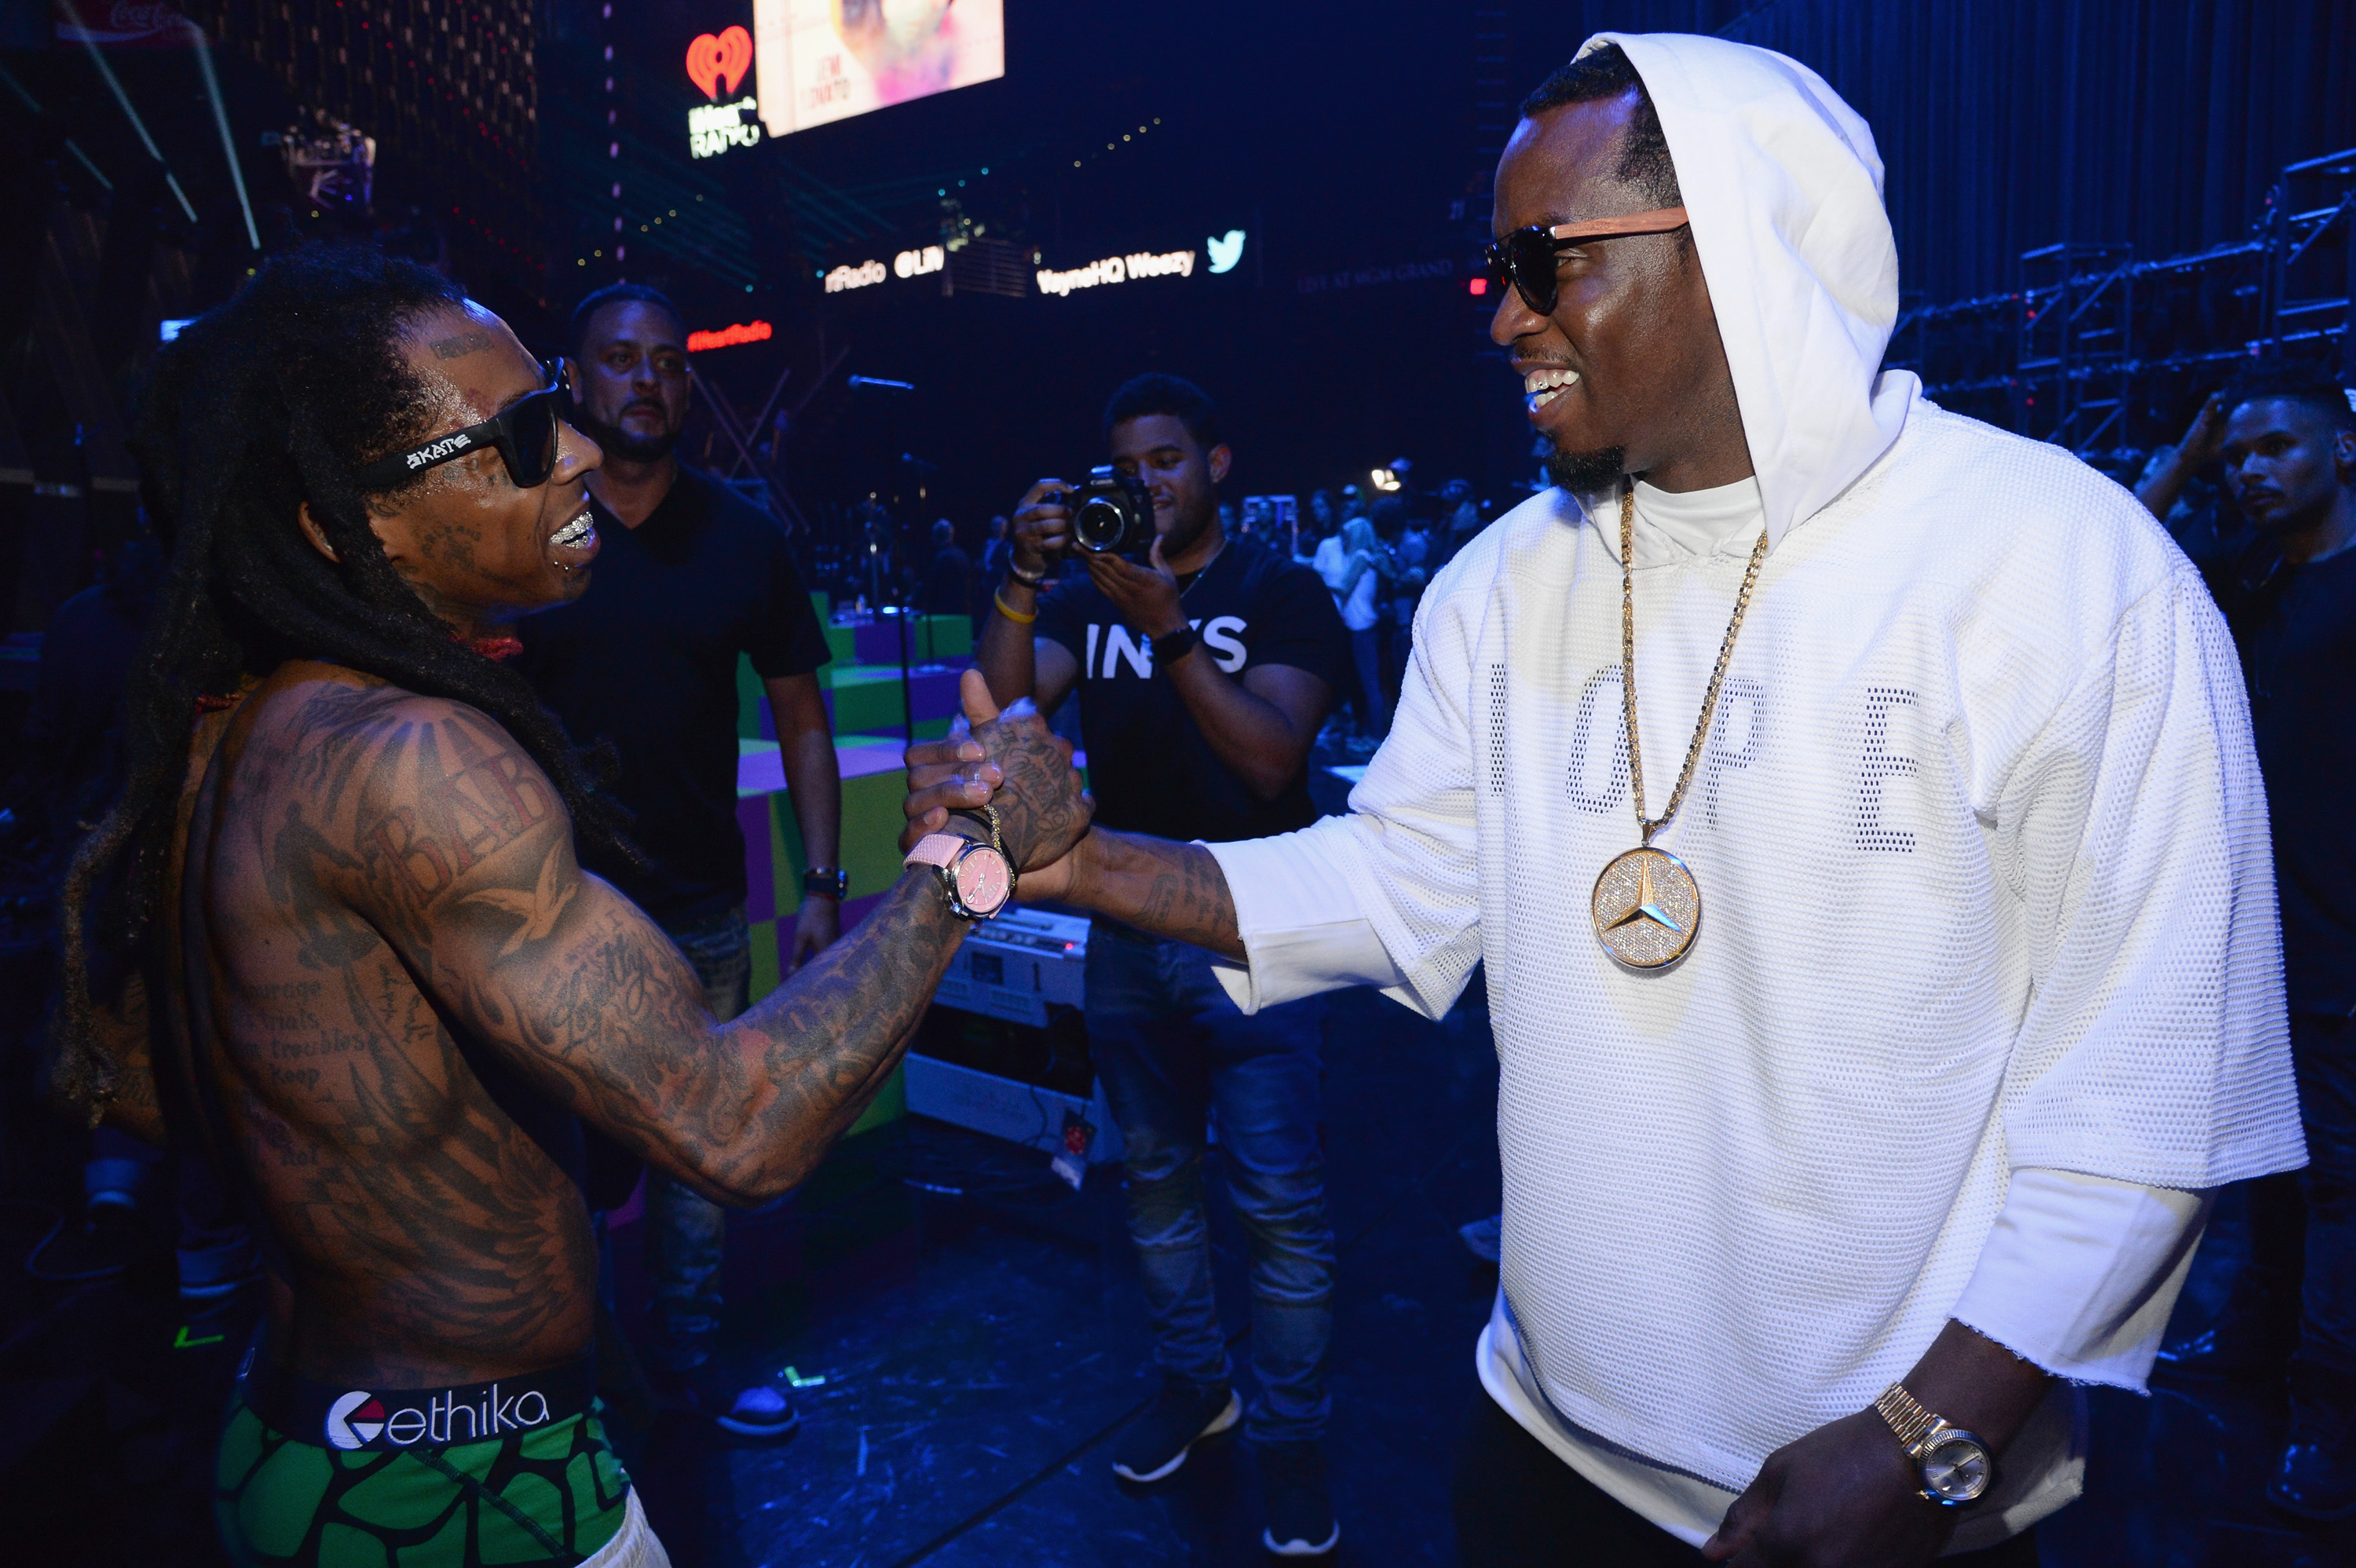 Lil Wayne and Diddy at the 2015 iHeartRadio Music Festival